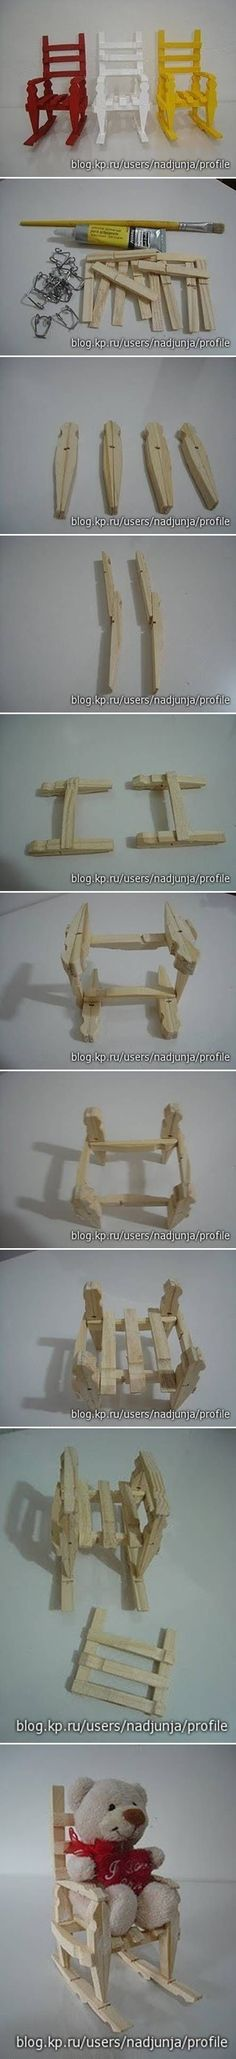 DIY Clothespin Rocking Chair DIY Projects / UsefulDIY.com